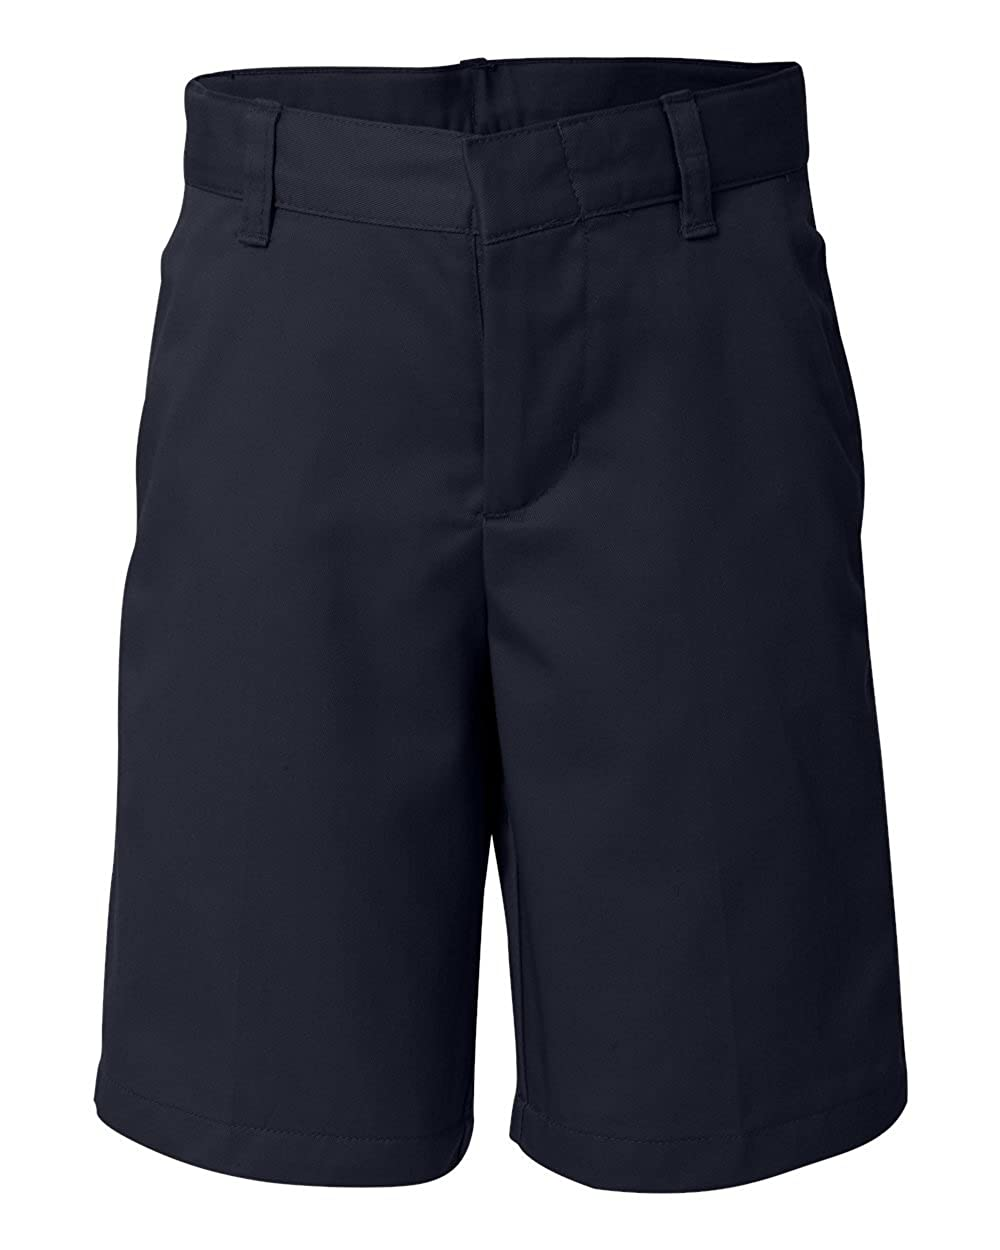 French Toast School Uniform Boys Flat Front Adjustable Waist Shorts, Navy, 14